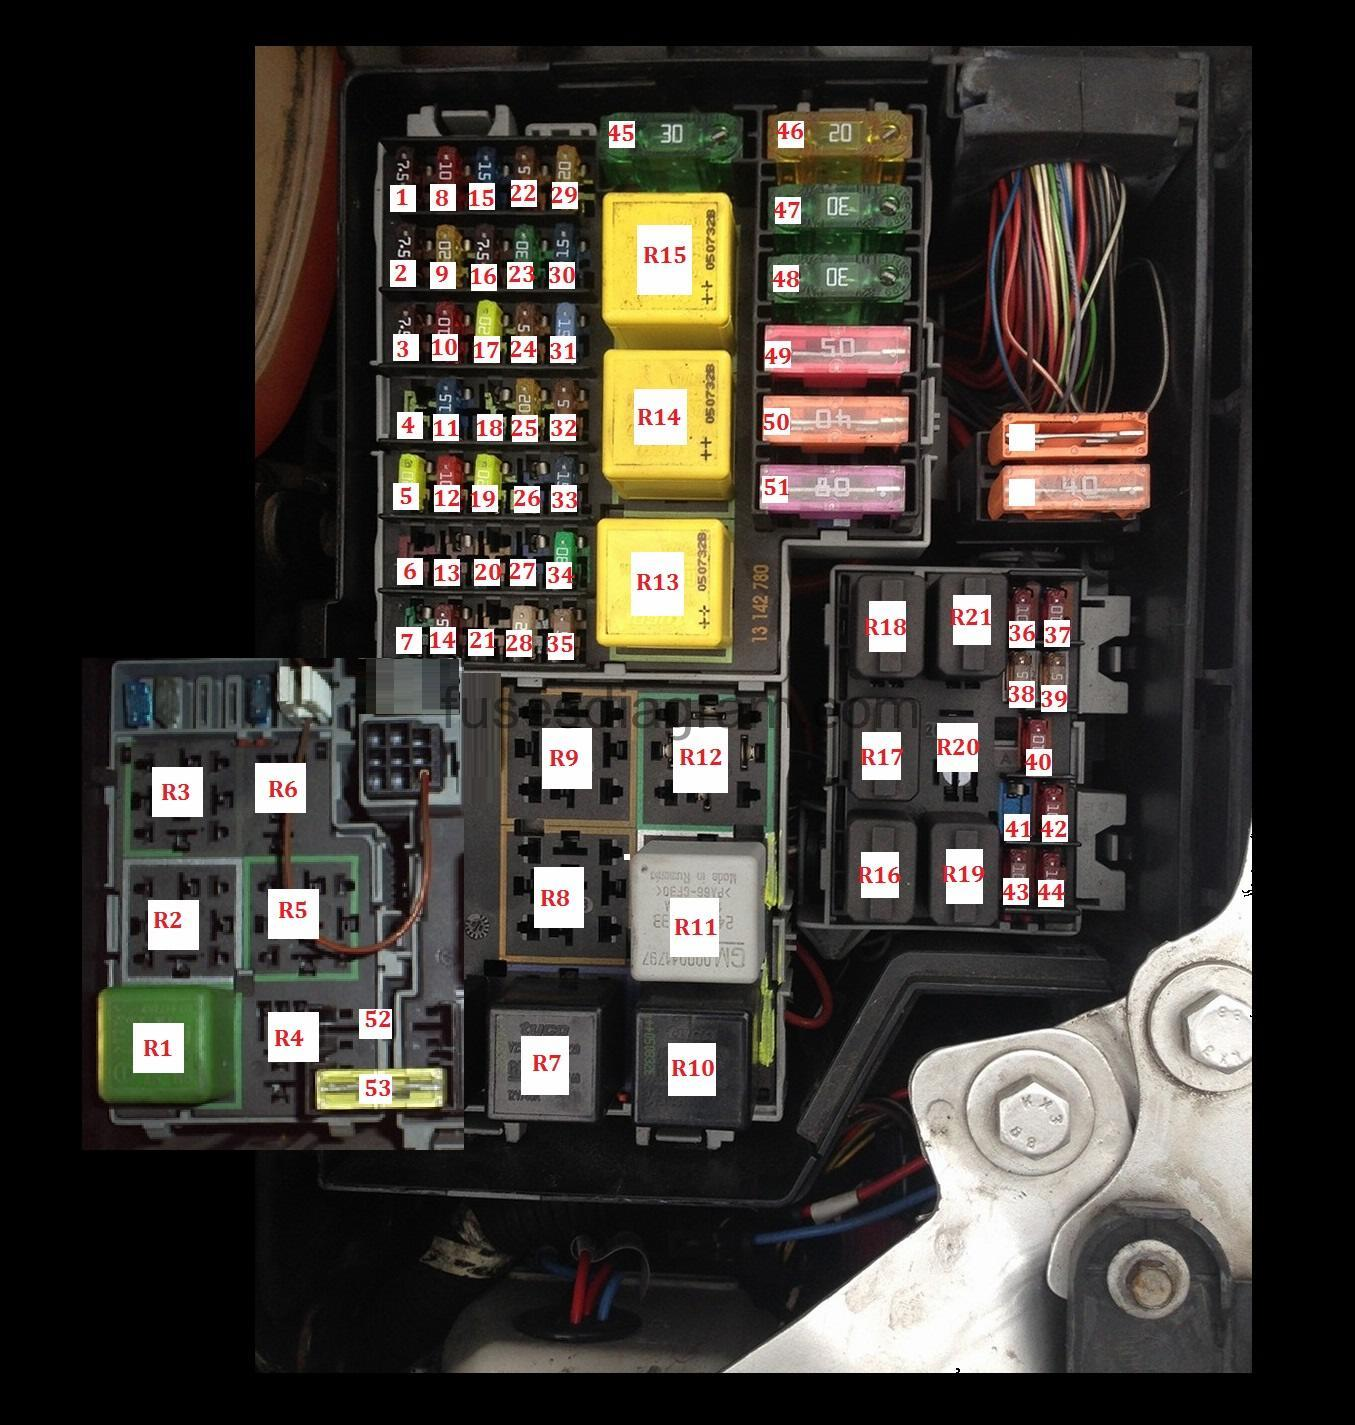 Fuse Box Vauxhall Combo | Wiring Diagrams Opel Corsa Utility Fuse Box Layout on